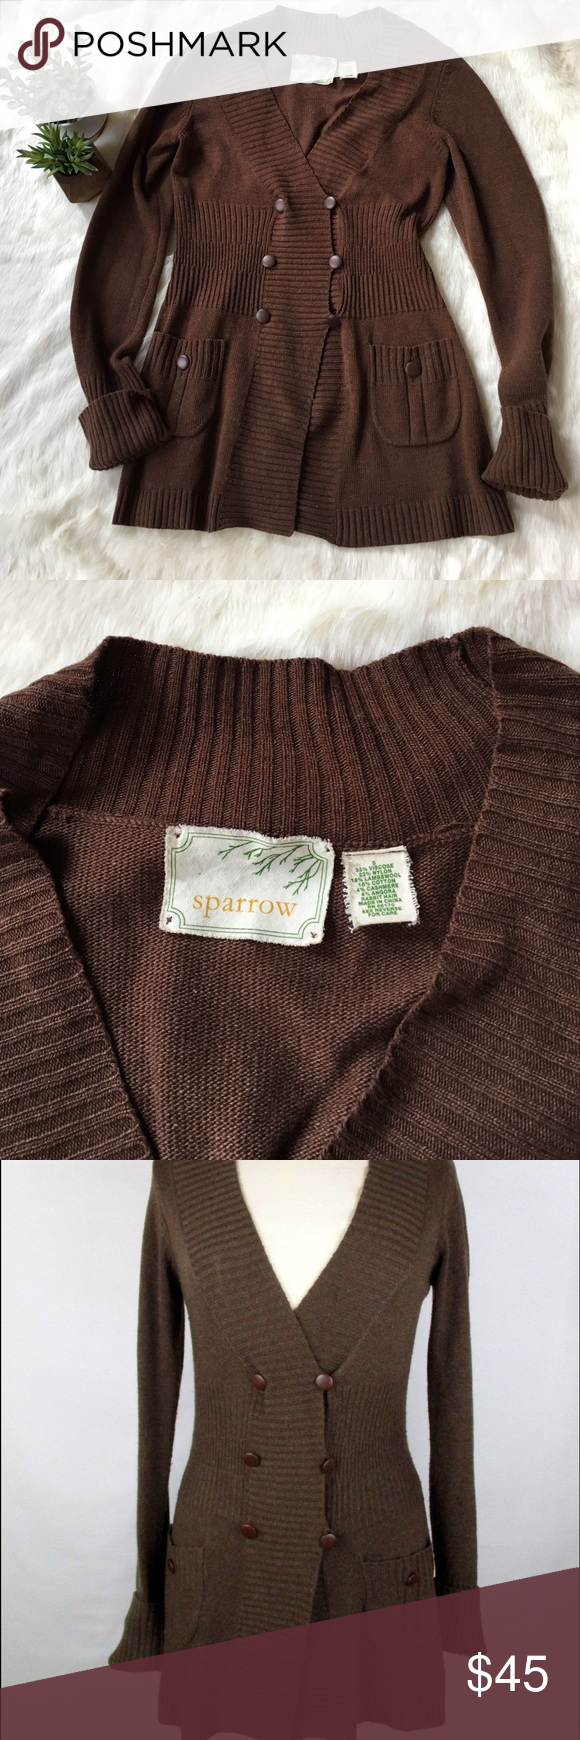 Anthropologie chocolate brown cardigan sweater